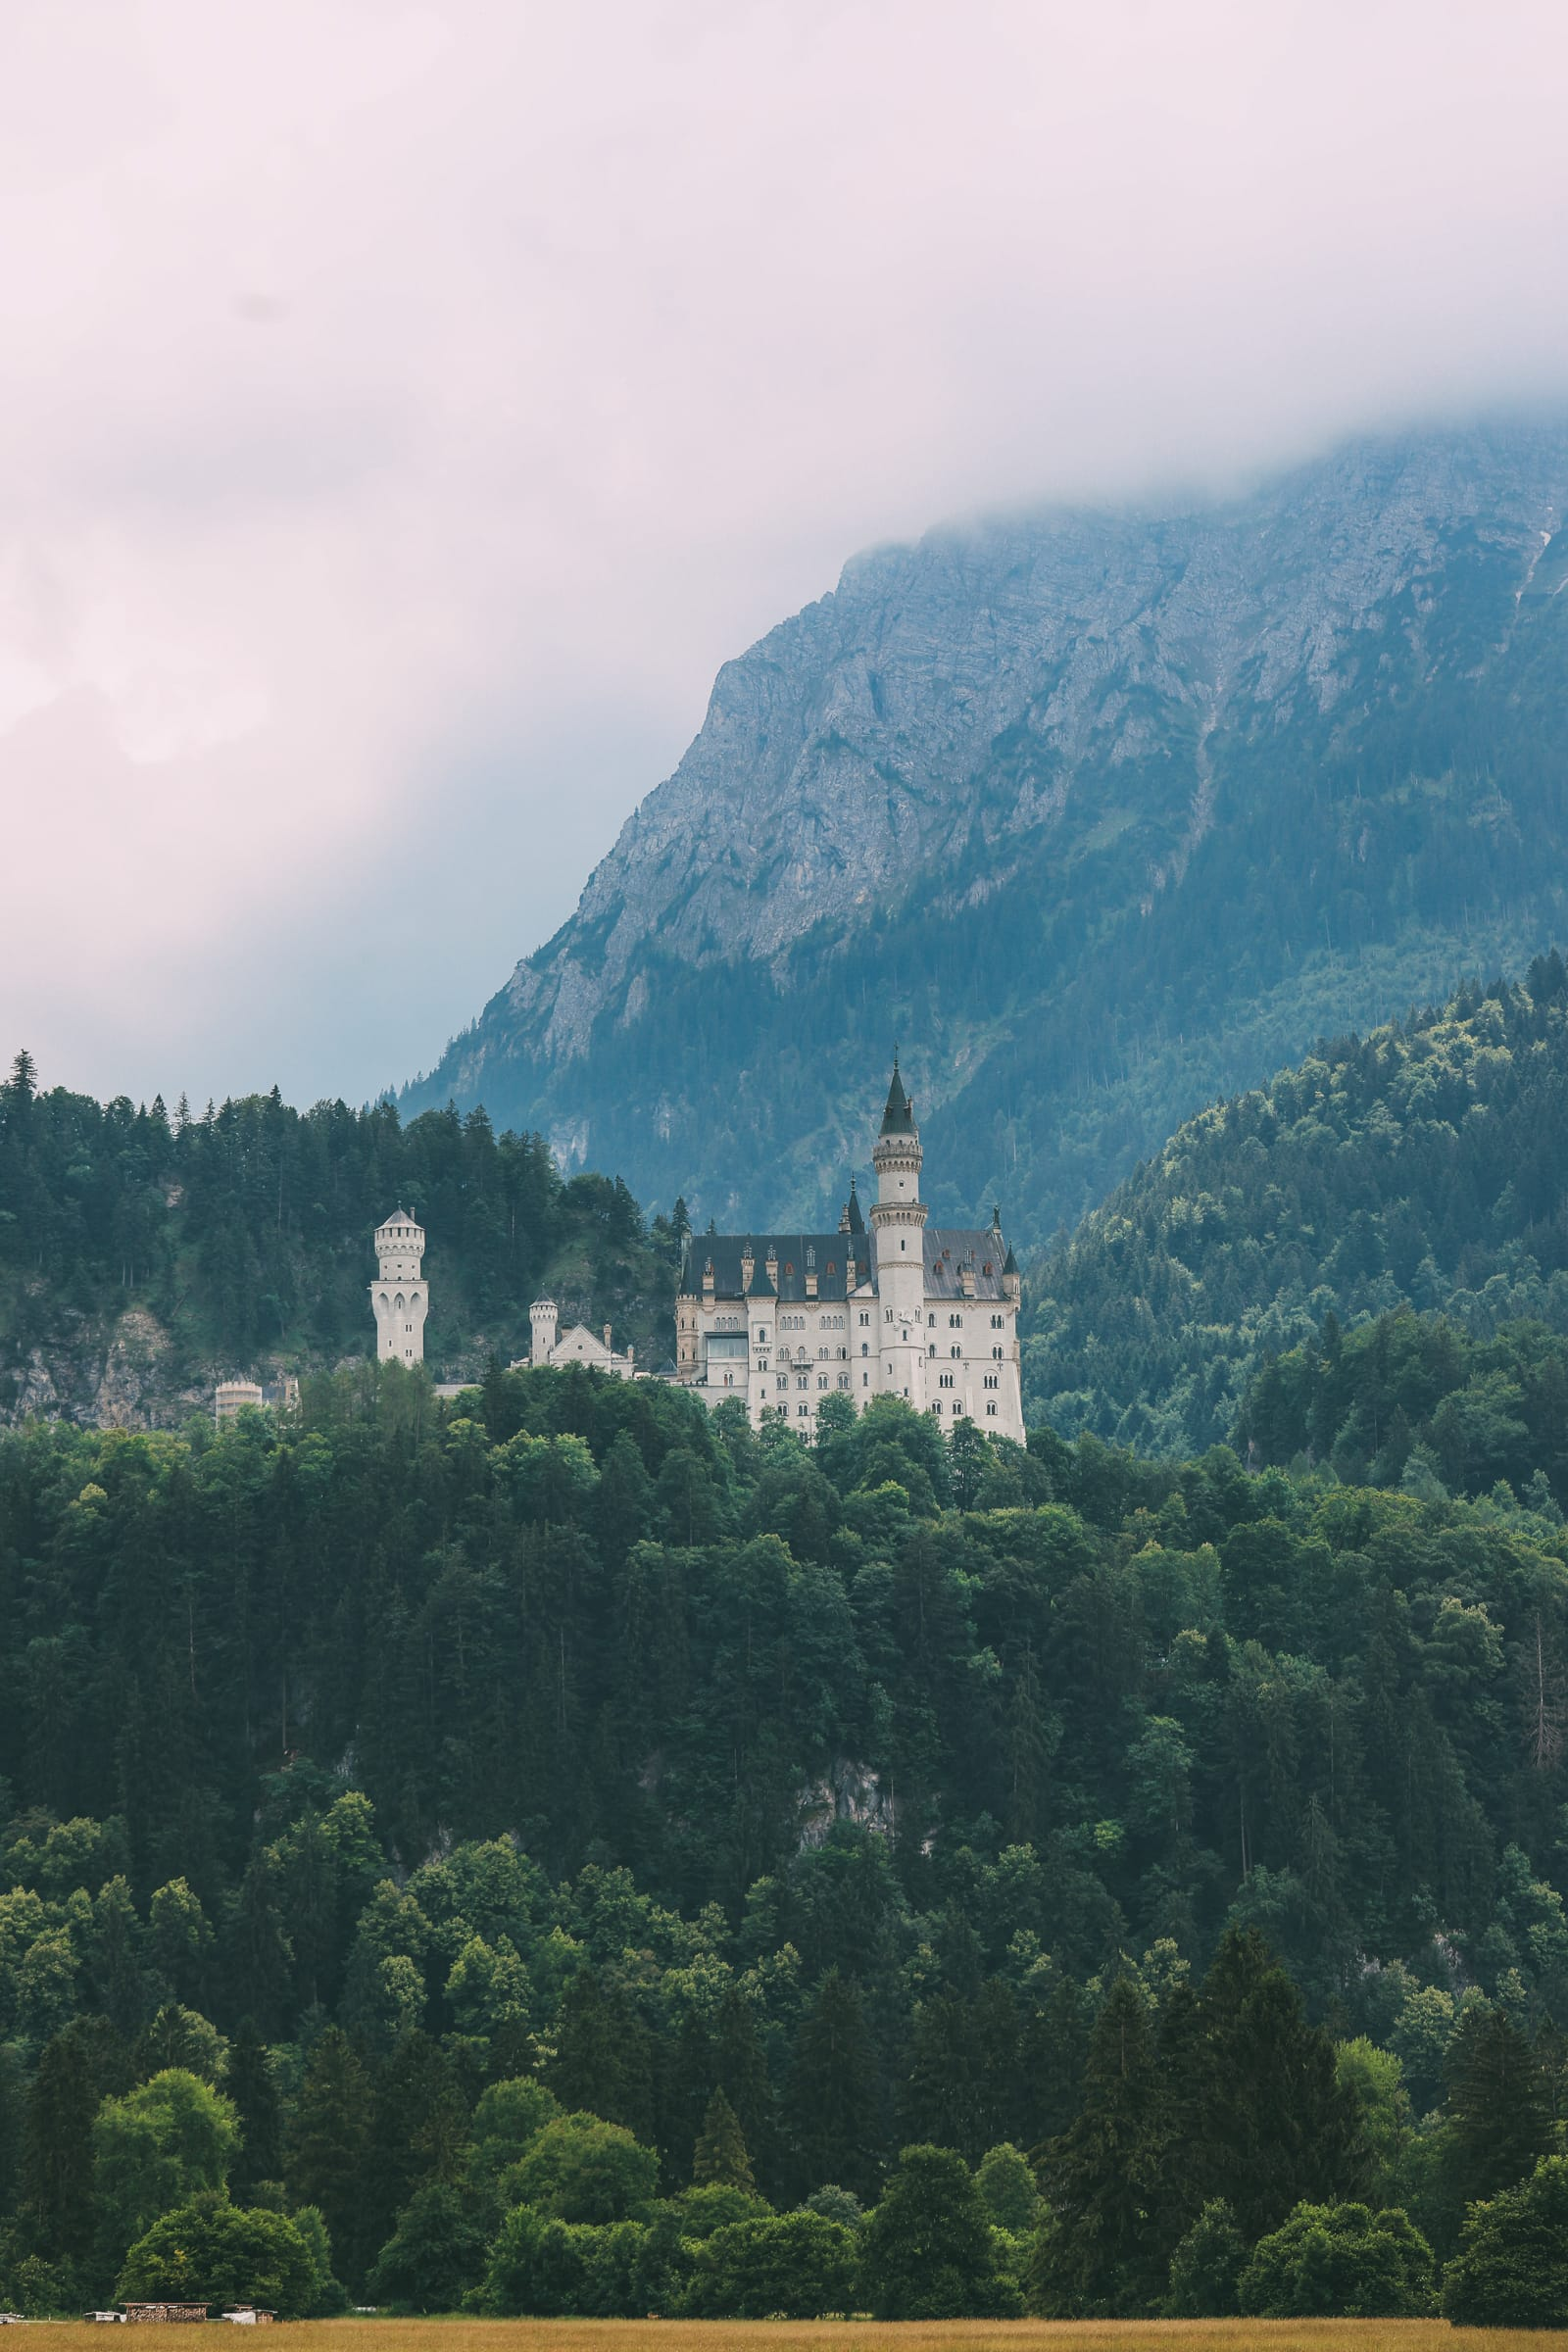 Neuschwanstein Castle - The Most Beautiful Fairytale Castle In Germany You Definitely Have To Visit! (4)